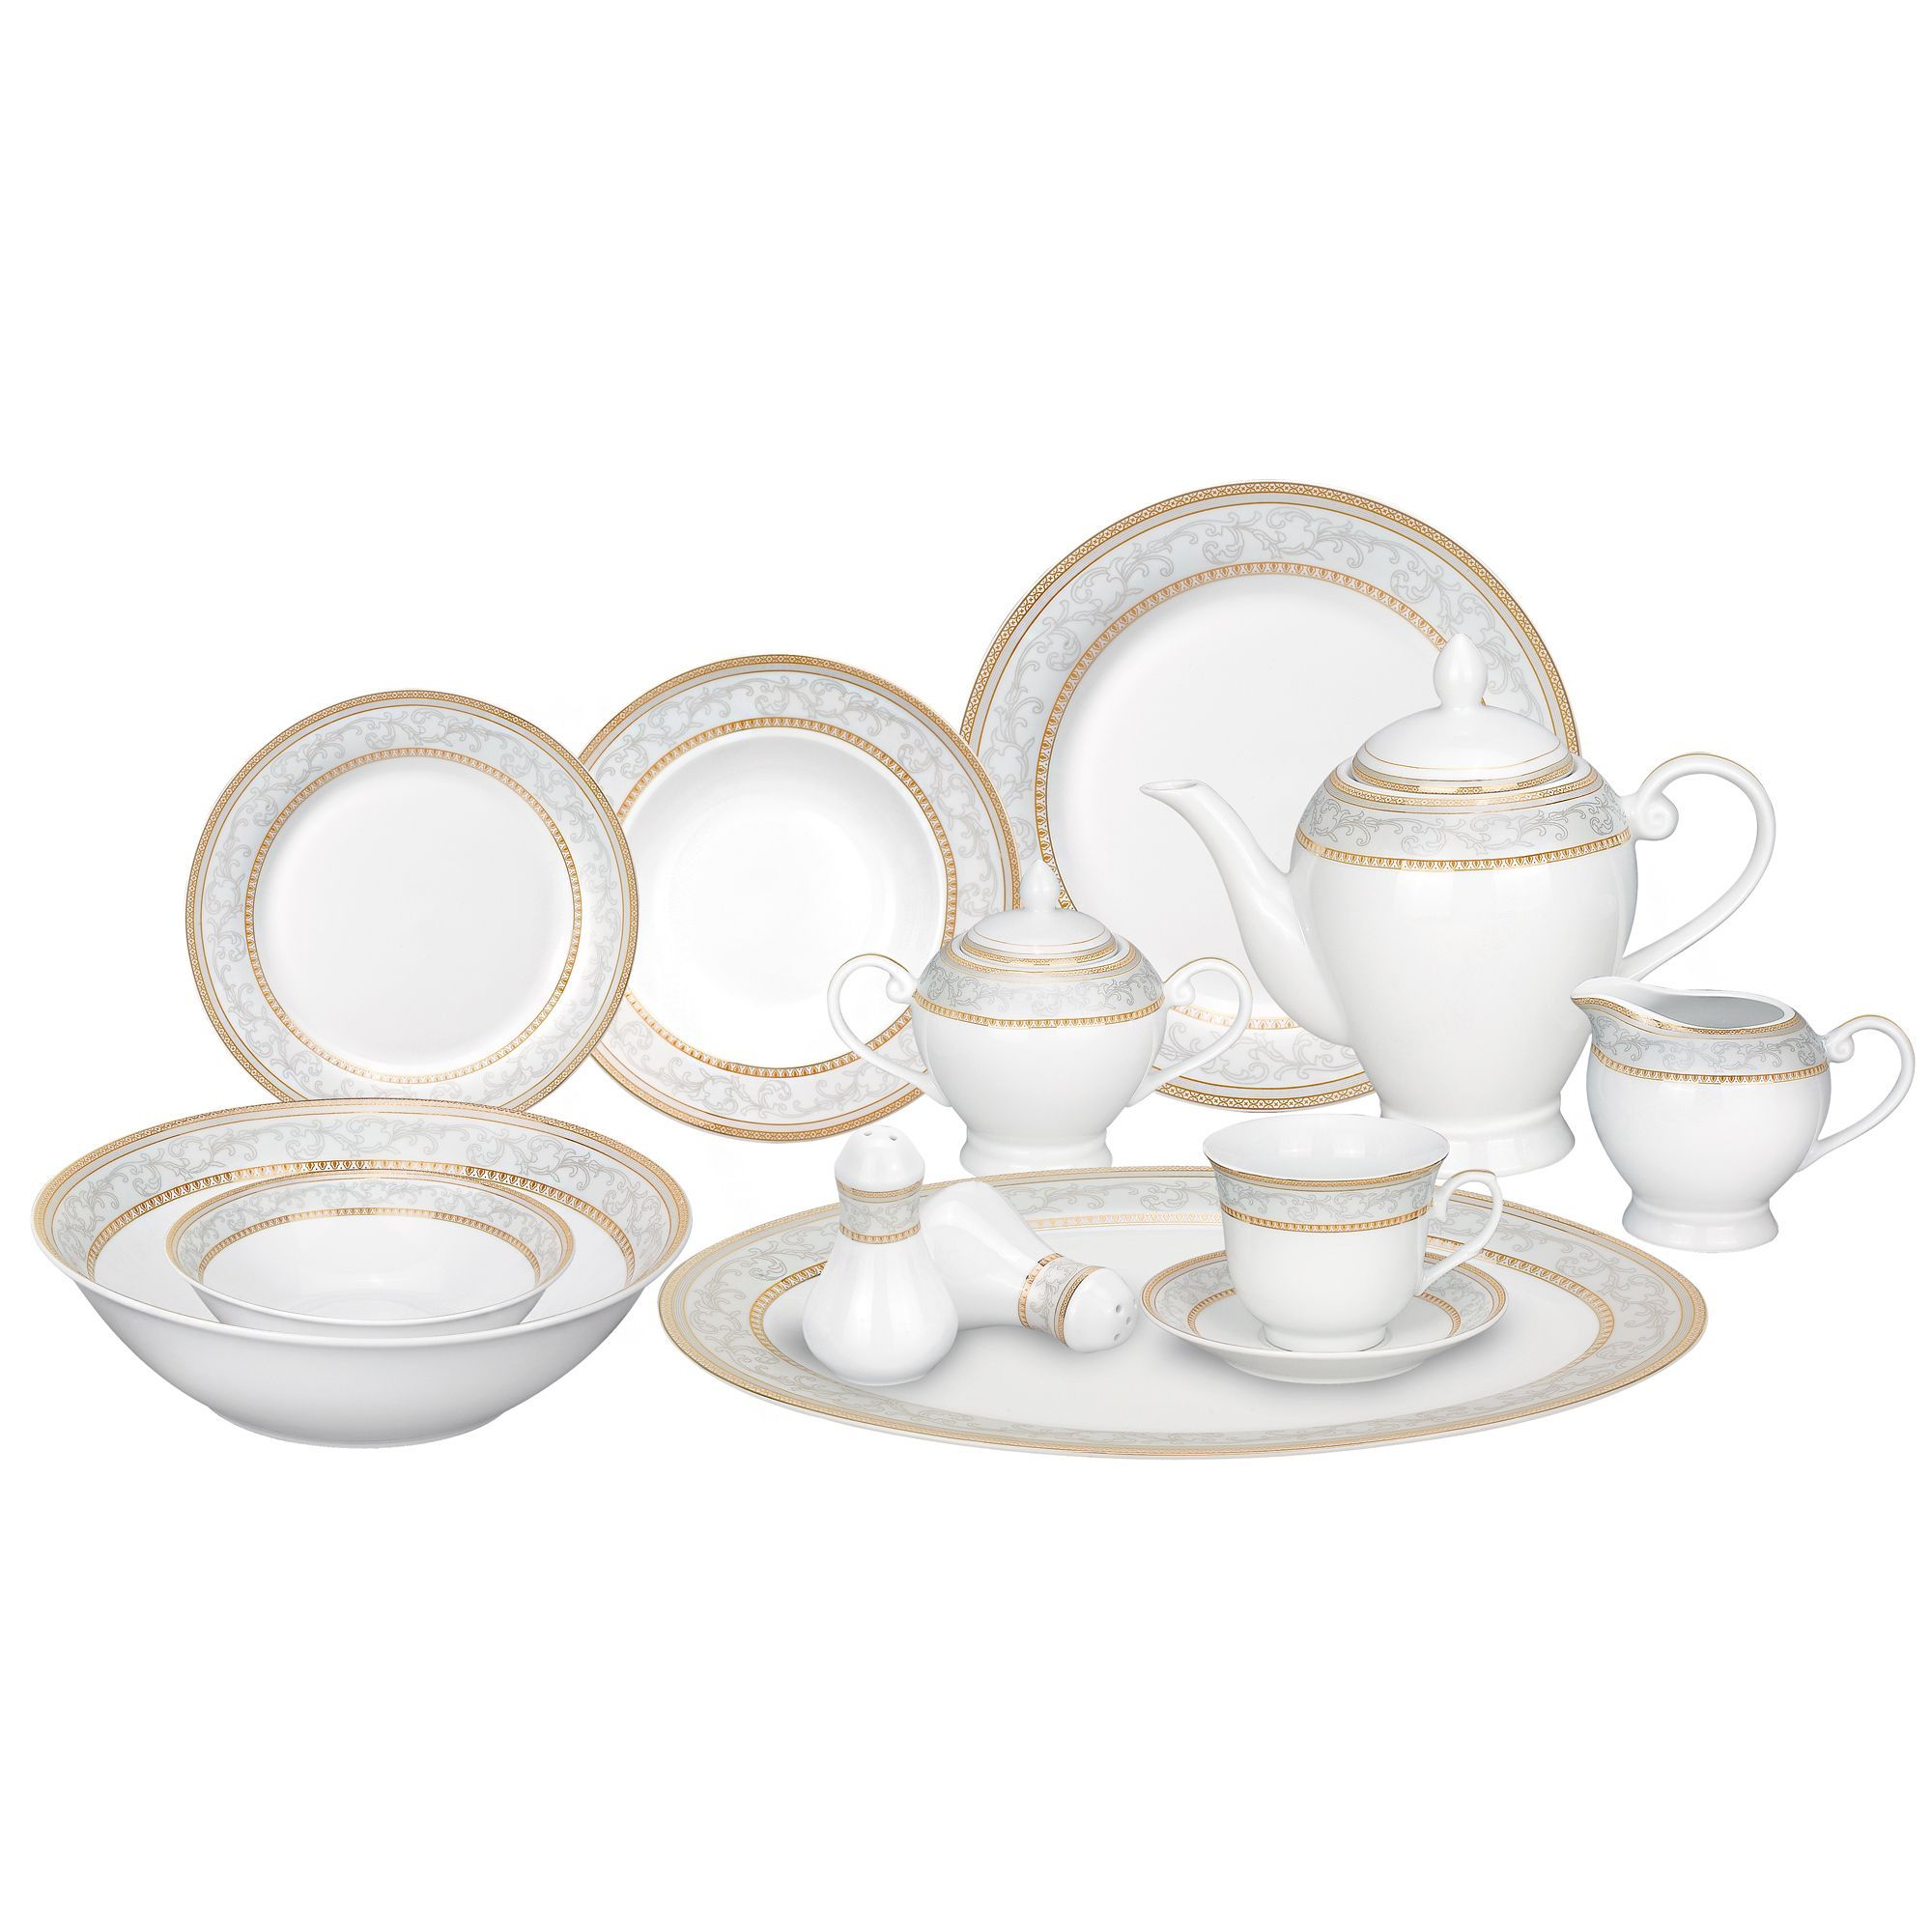 Lorenzo Import Alina-GD 57 Piece Porcelain Dinnerware Set Service for 8 by Lorren Home Trends As Shown  sc 1 st  Pinterest & Elegant and attractive with a classic gold accent scroll border the ...